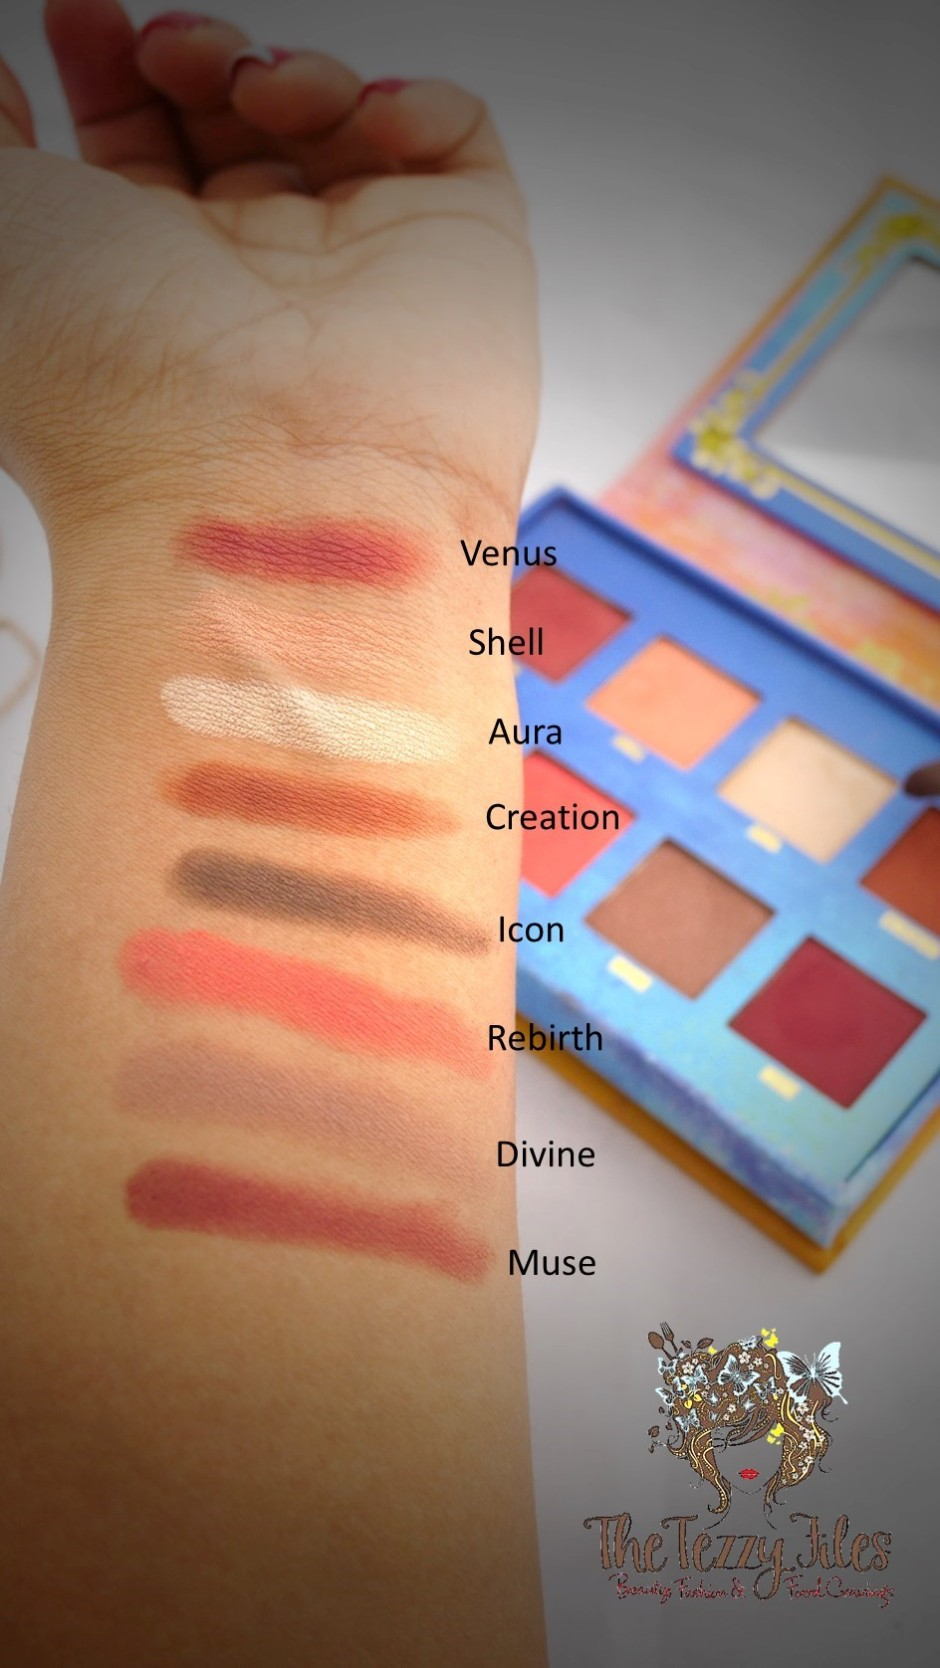 Lime Crime Venus Palette Review Swatches Dubai Beauty Blog UAE Blogger The Tezzy Files Beauty Review Cosmetics Makeup Palette Eye Shadows Sephora Middle East